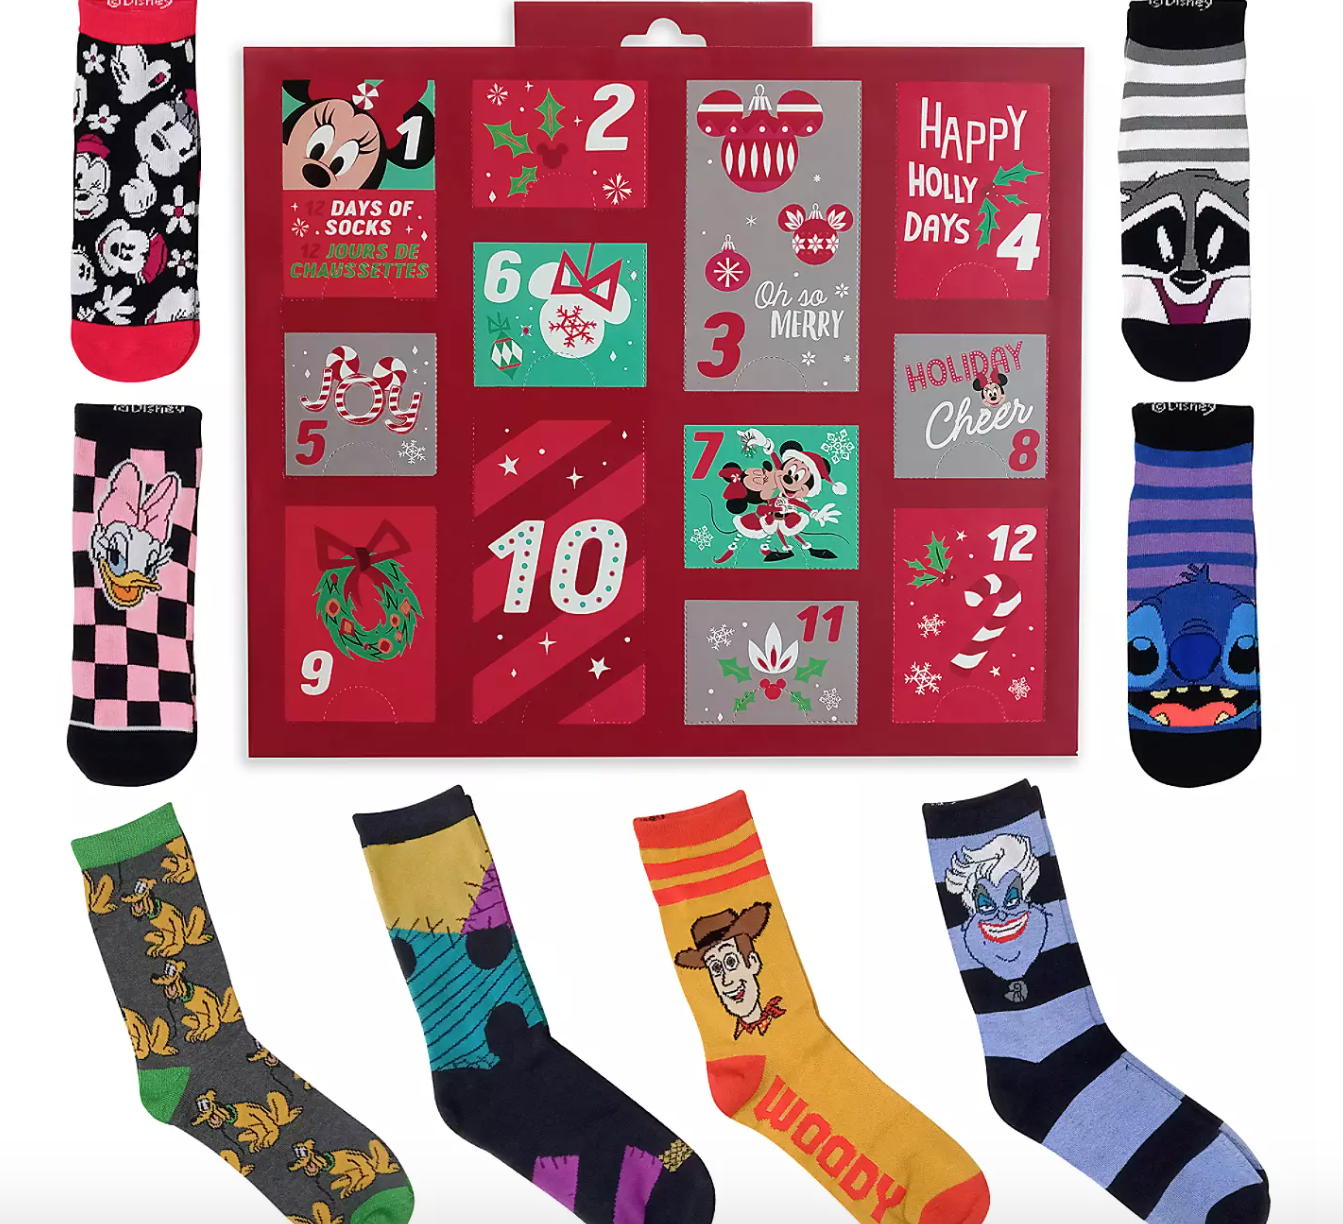 We Can't Believe How Much Christmas Merchandise Disney Just